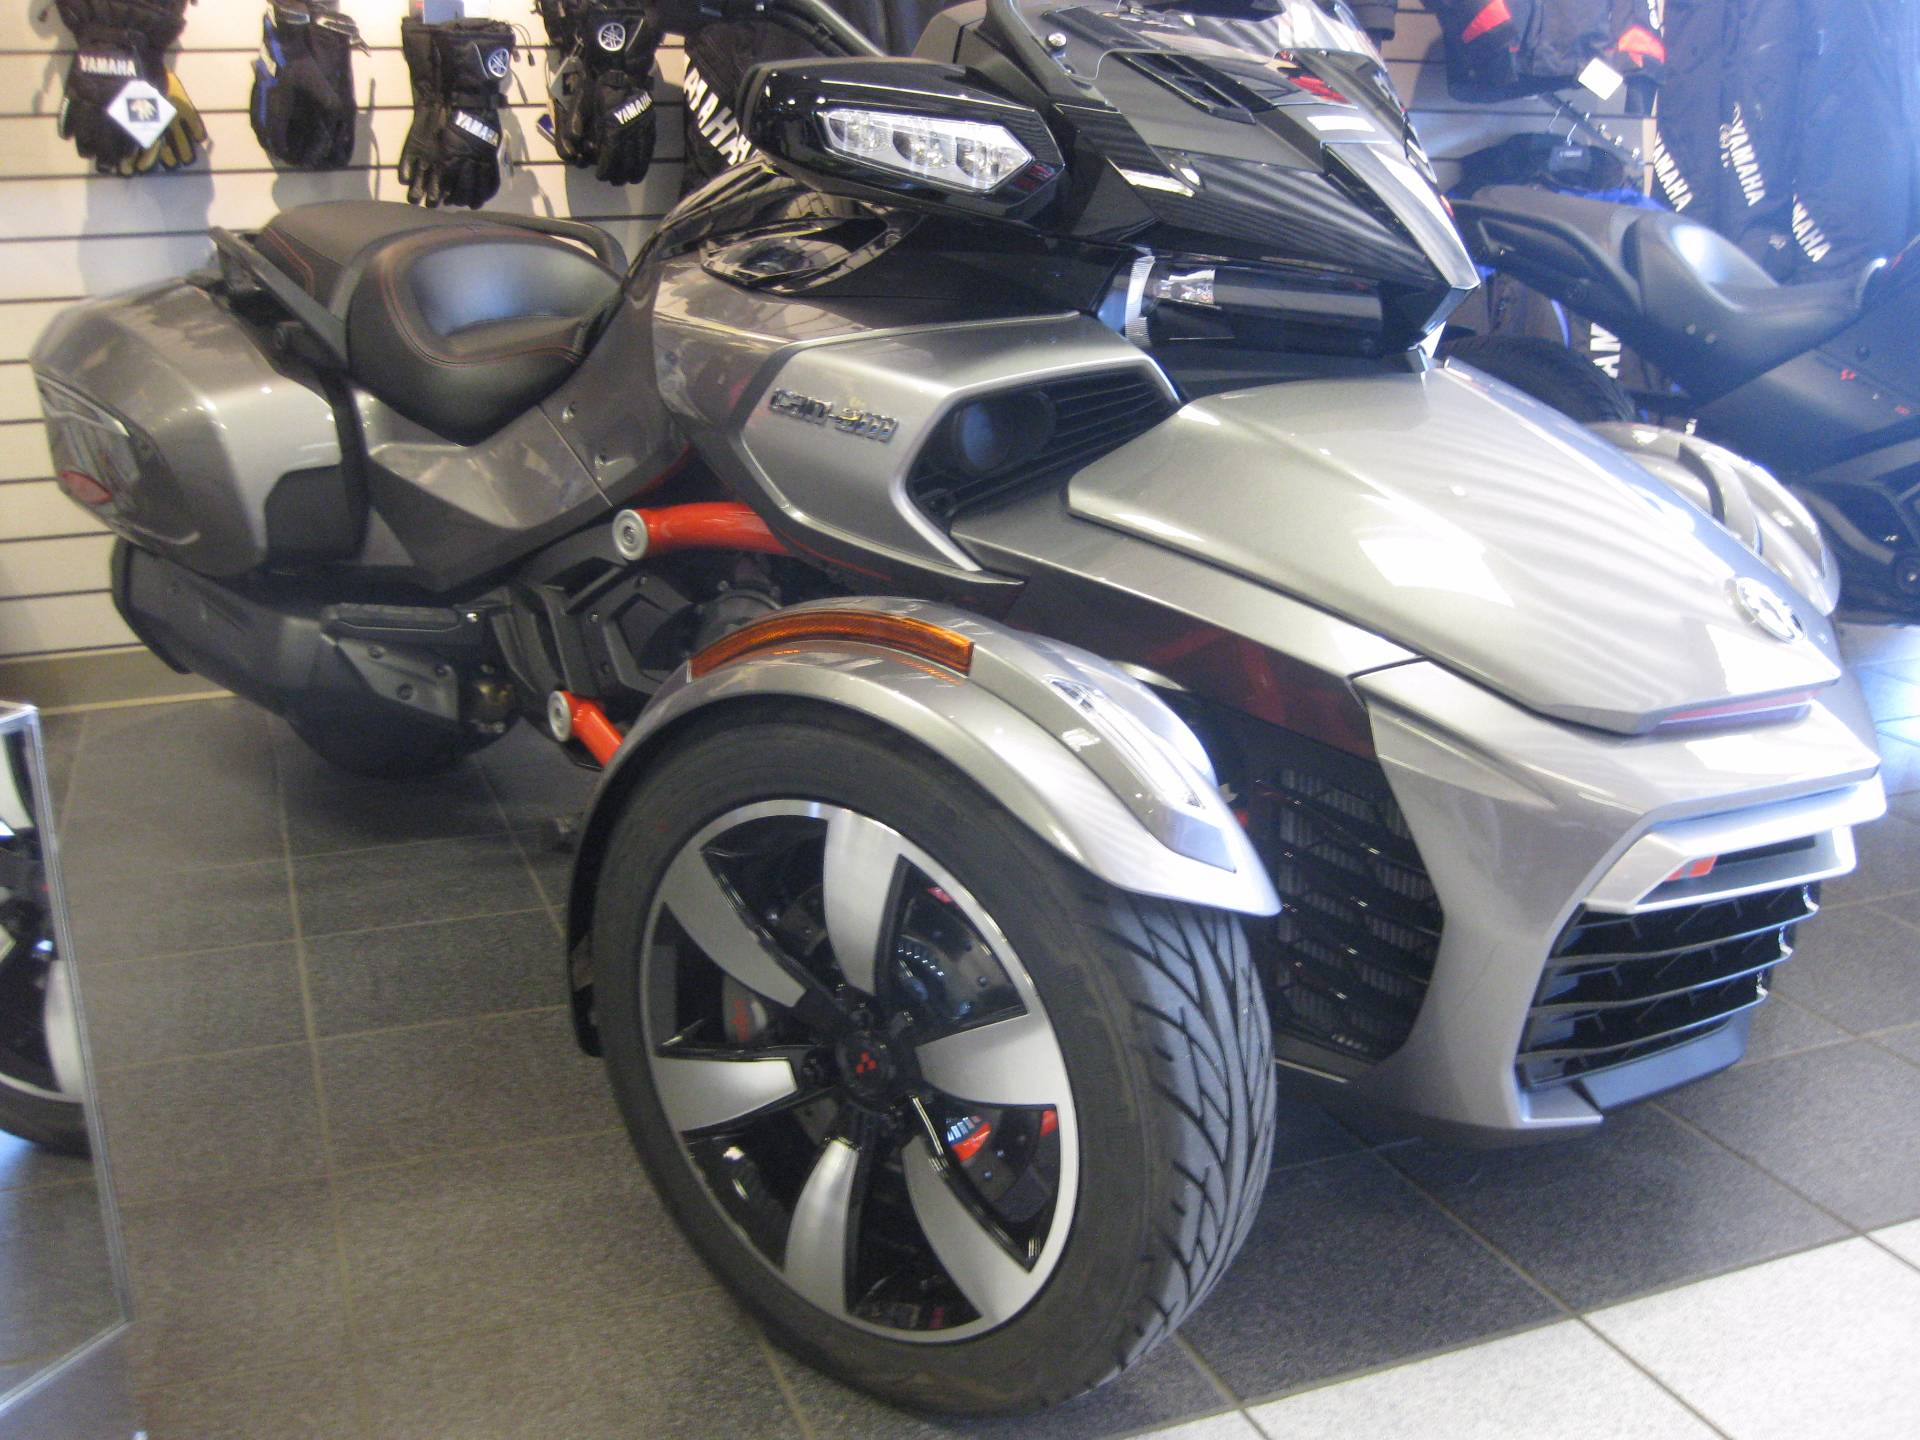 New 2016 Can Am Spyder F3 T SE6 Motorcycles in Wisconsin Rapids WI